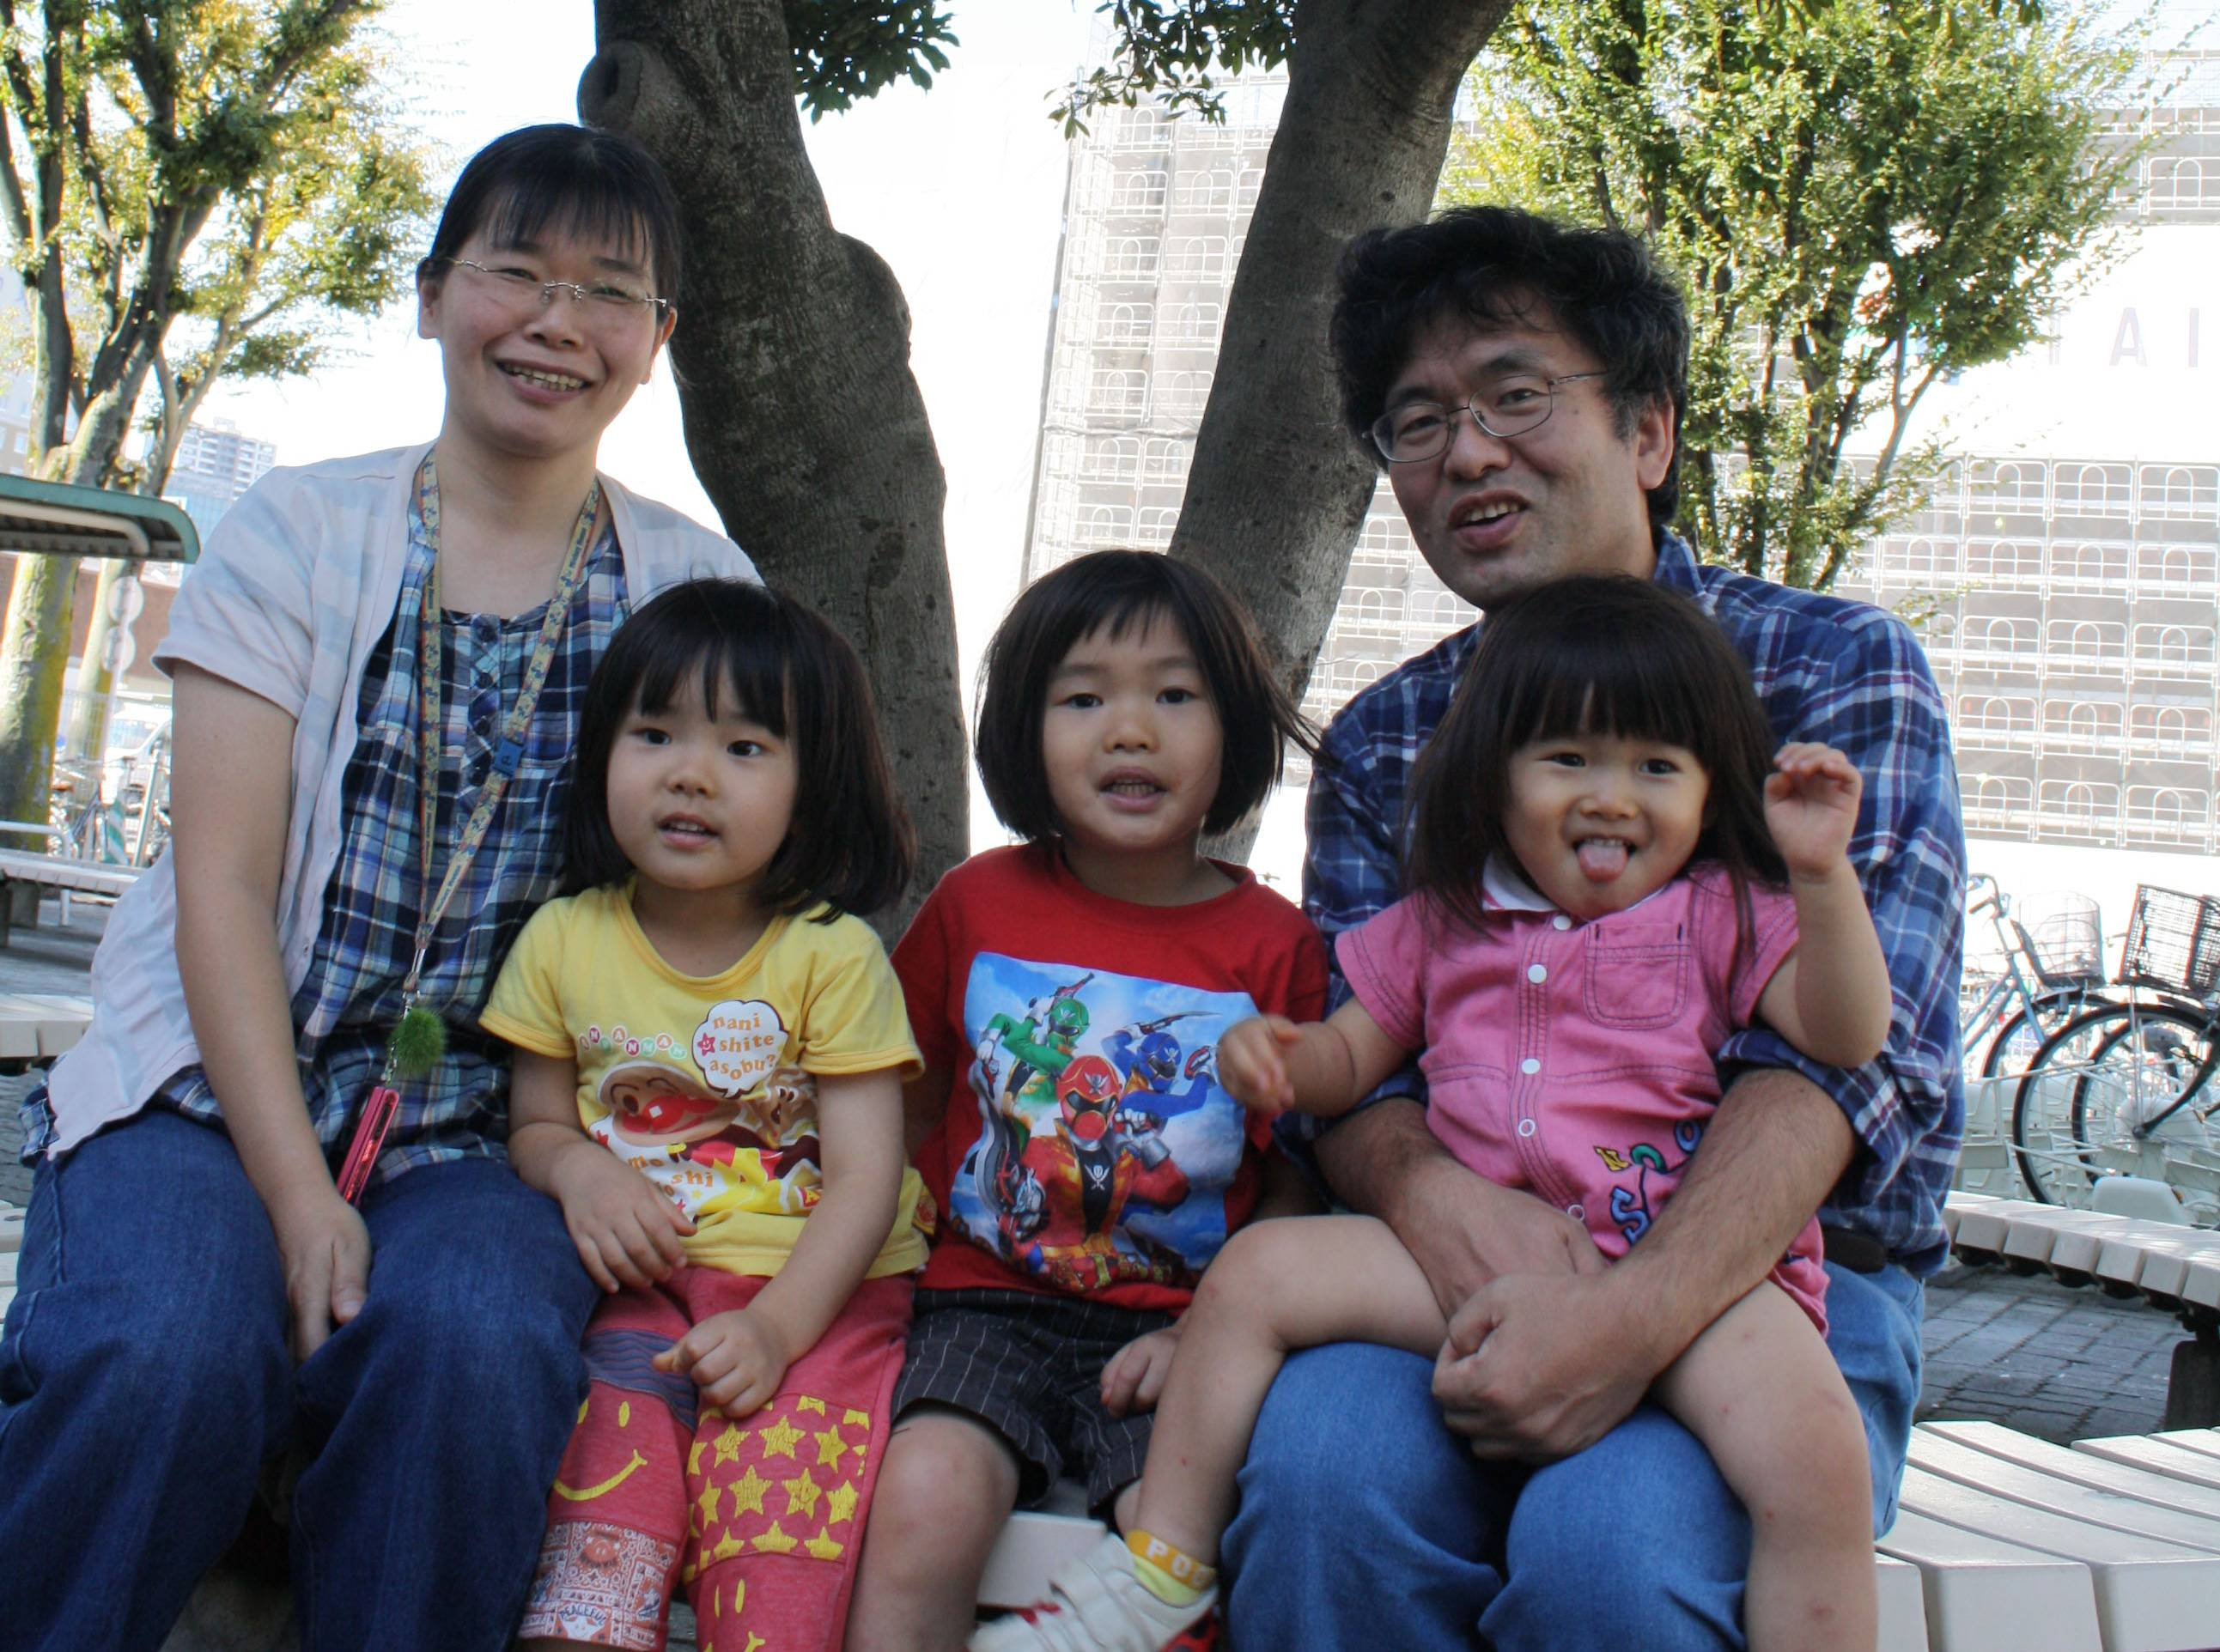 Home away from home: The Segawa family has only spent weekends together since Yuki left Koriyama, Fukushima Prefecture, with her three children in June 2012. | JUN HONGO